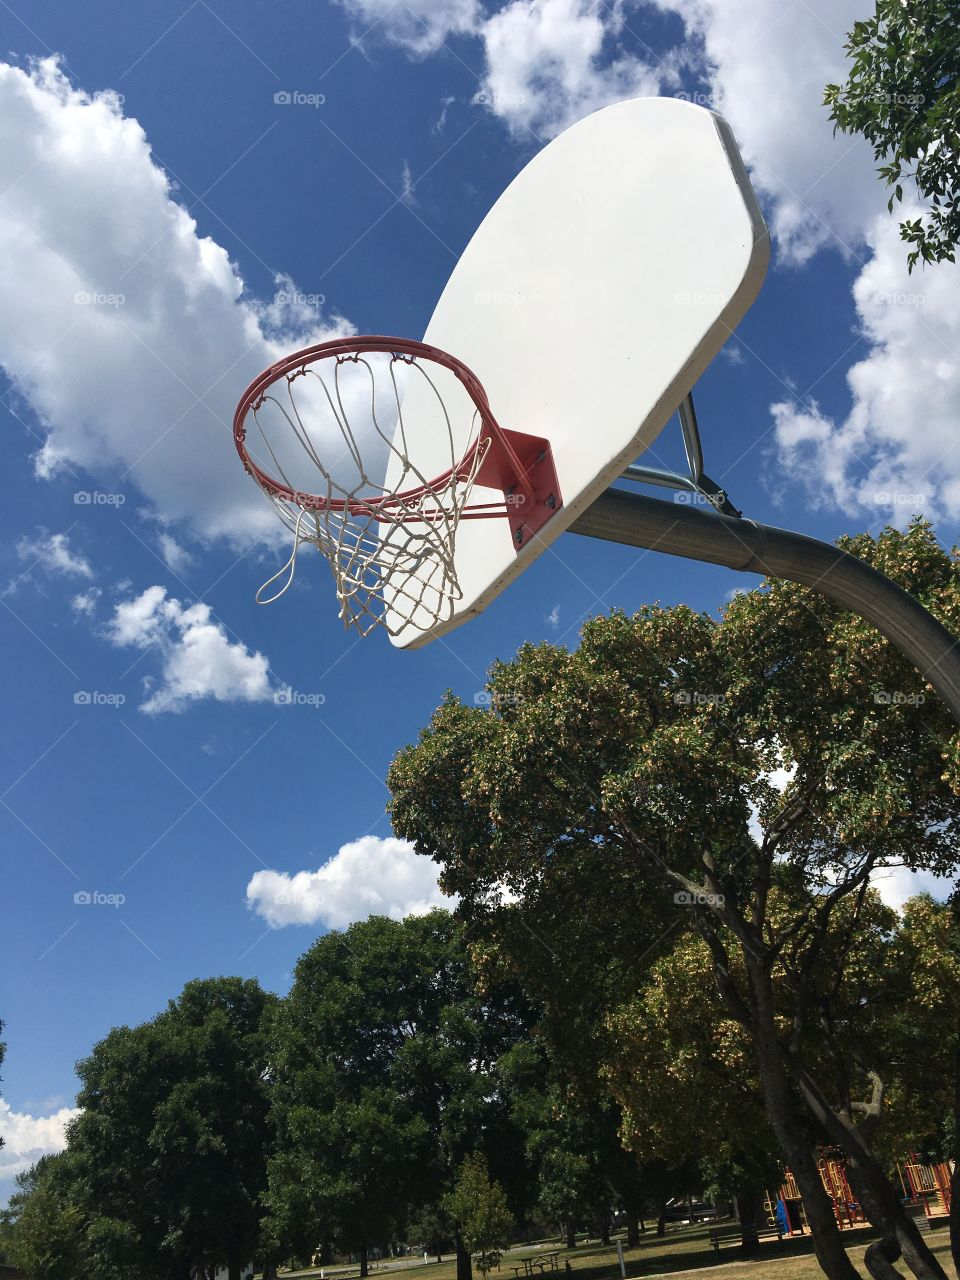 Basketball Net and Blue Sky with Clouds 1